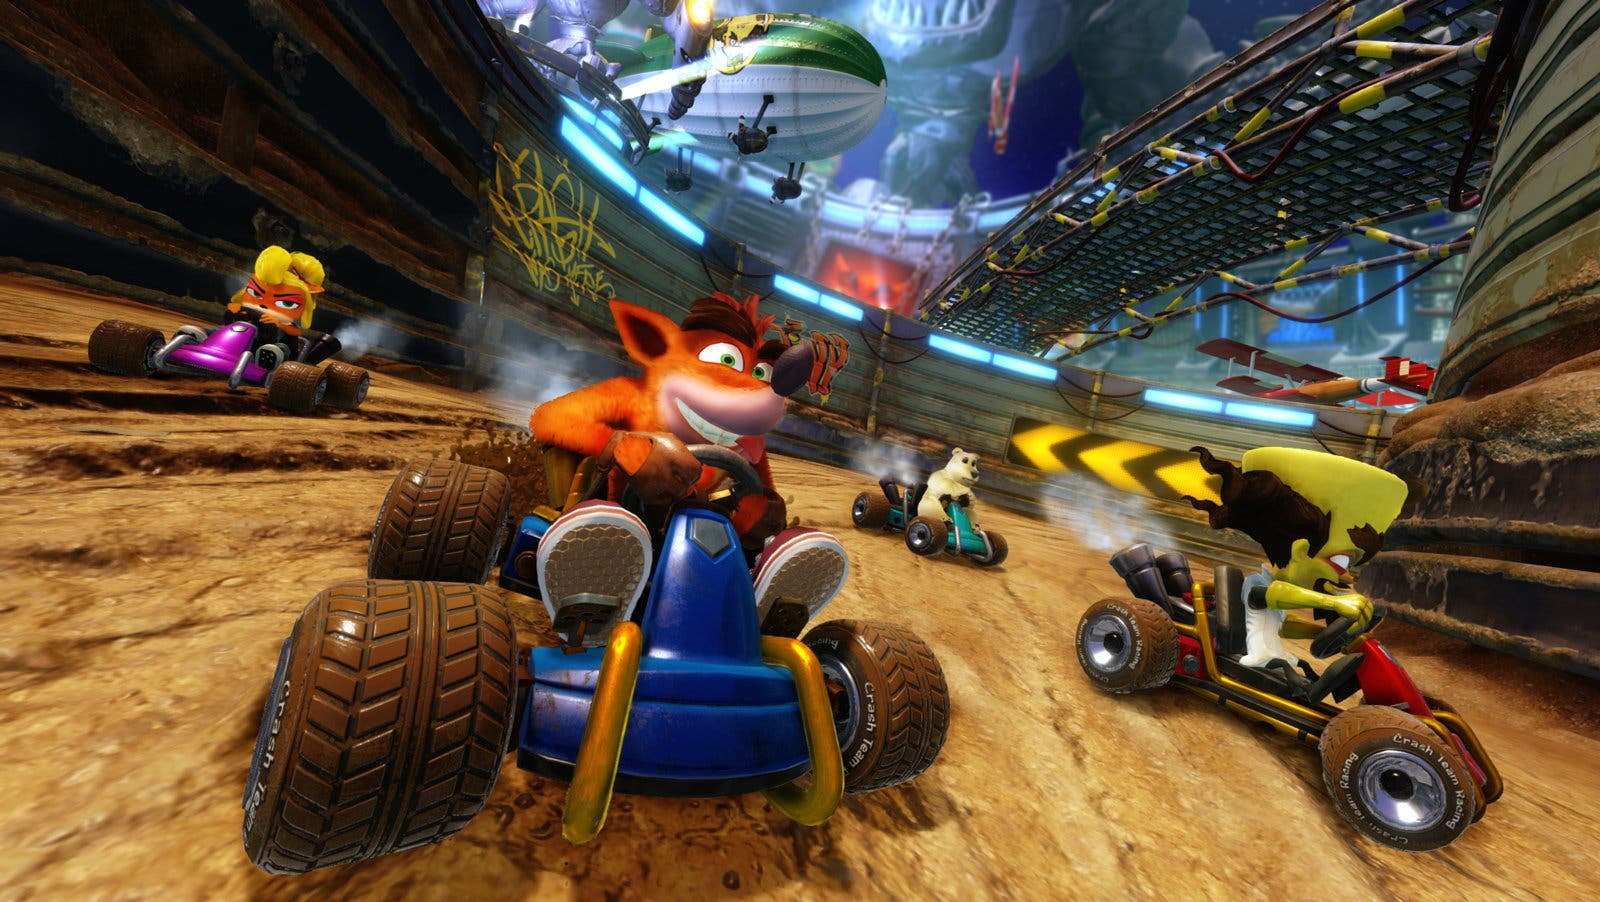 Imagen de Crash Team Racing Nitro-Fueled y Nintendo dominan las ventas semanales en UK